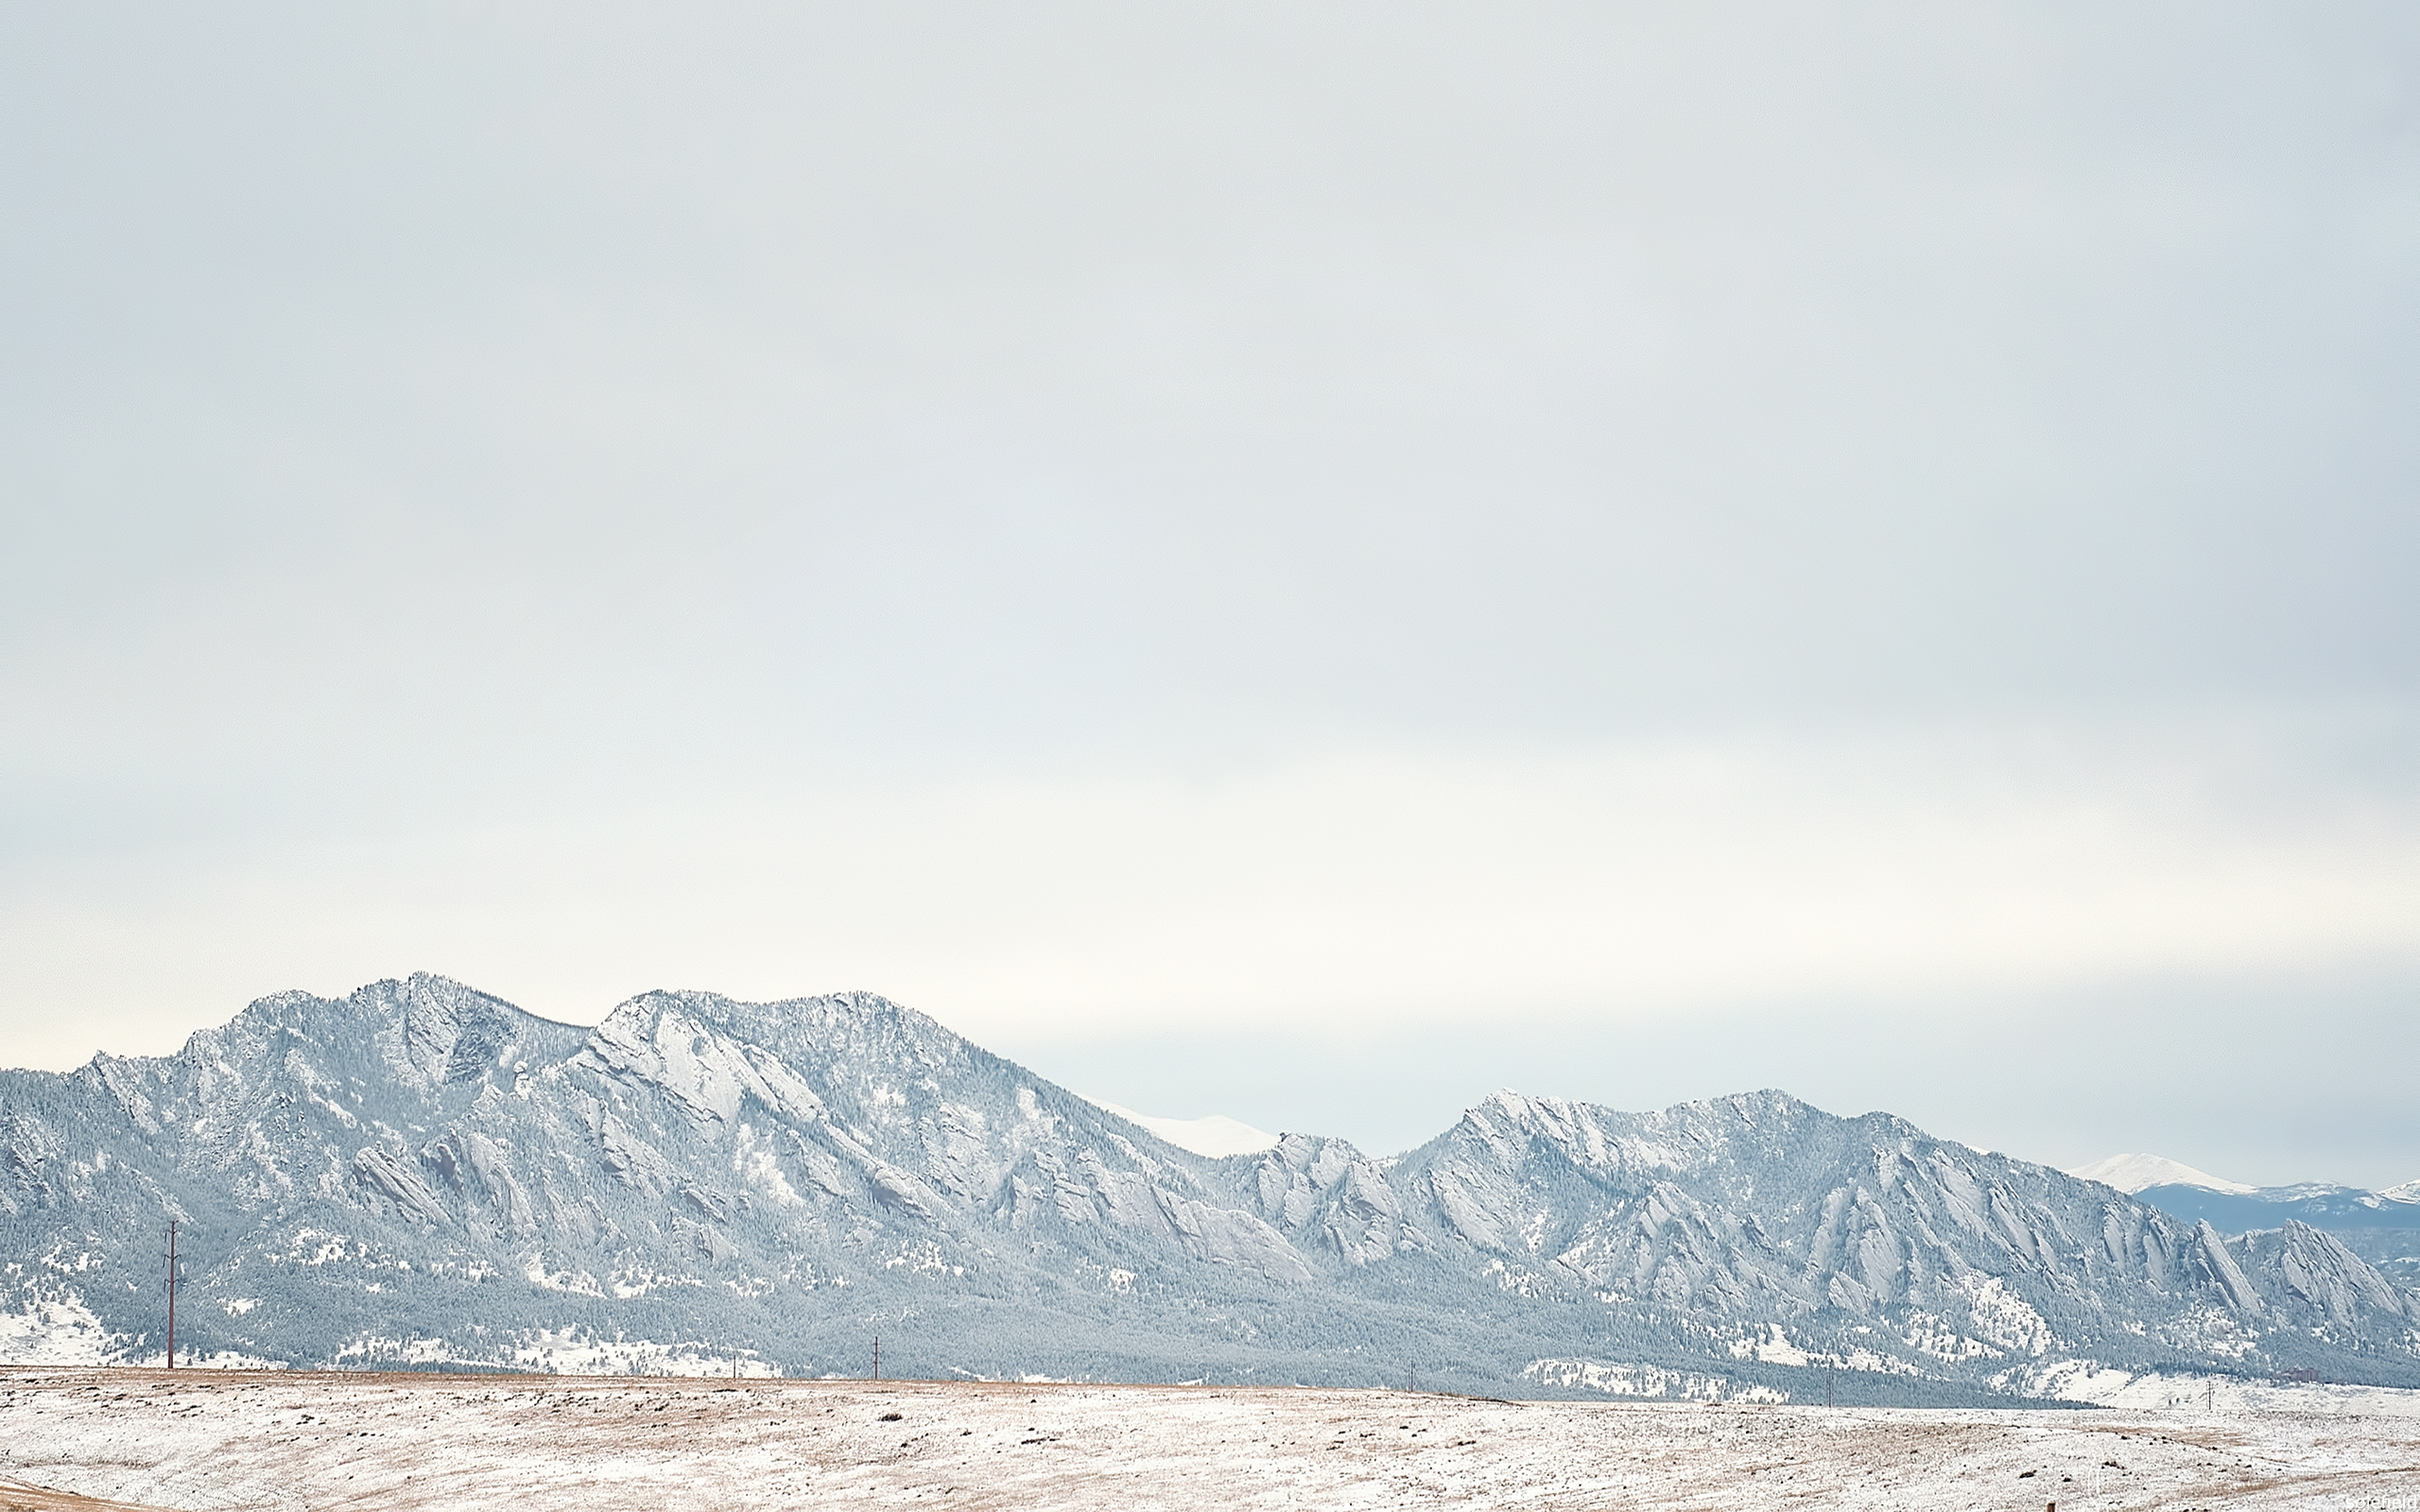 Boulder Foothills Dusted in Snow